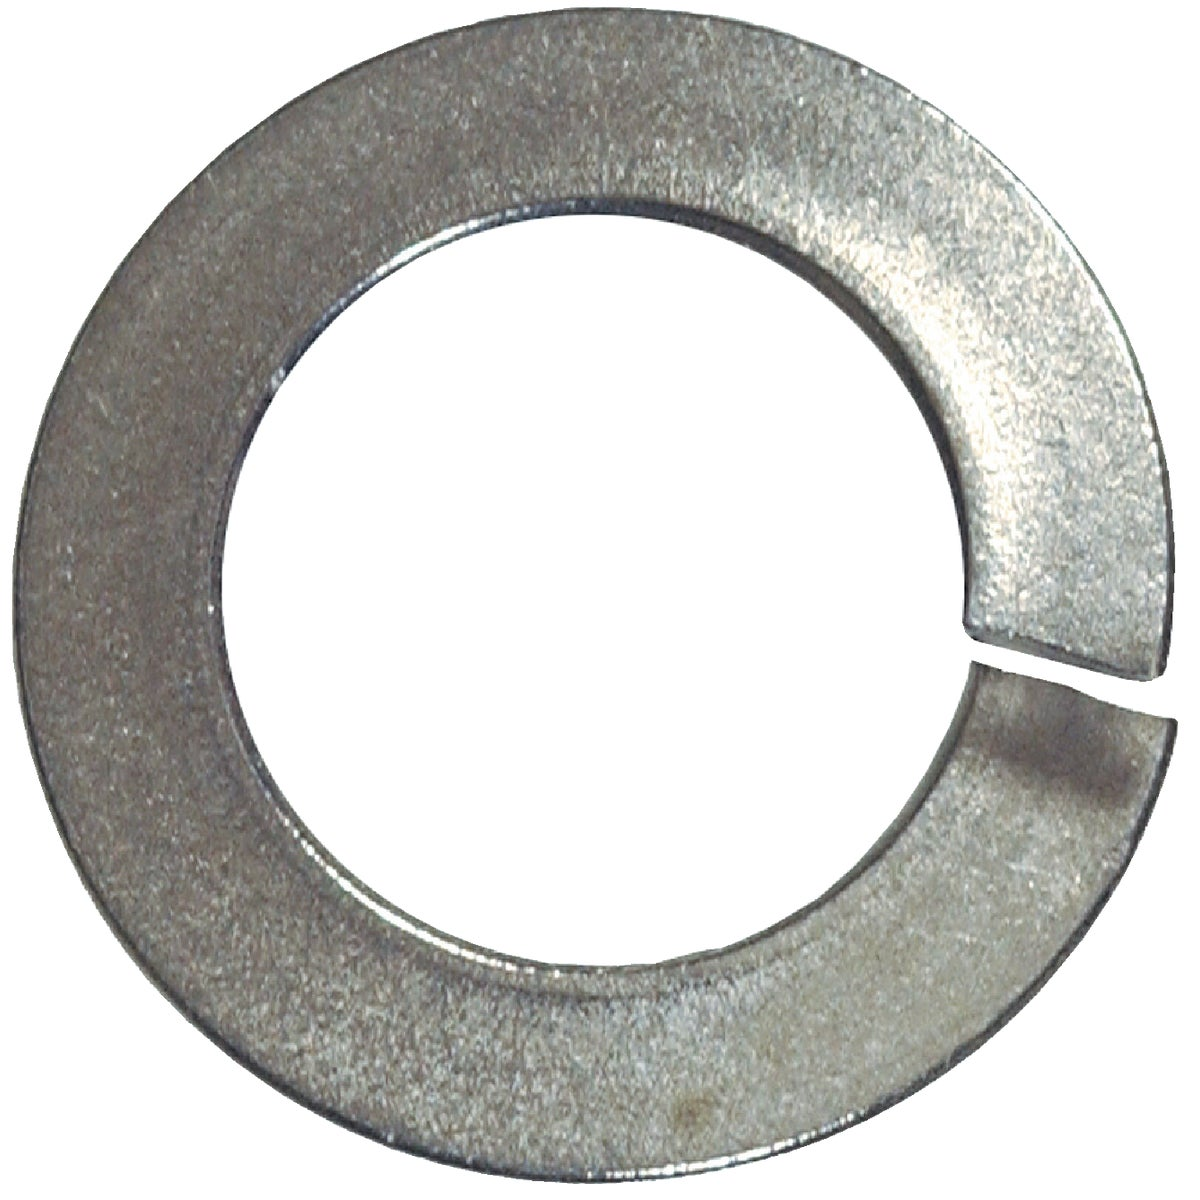 "3/8""SS SPLIT LOCK WASHER - 830670 by Hillman Fastener"